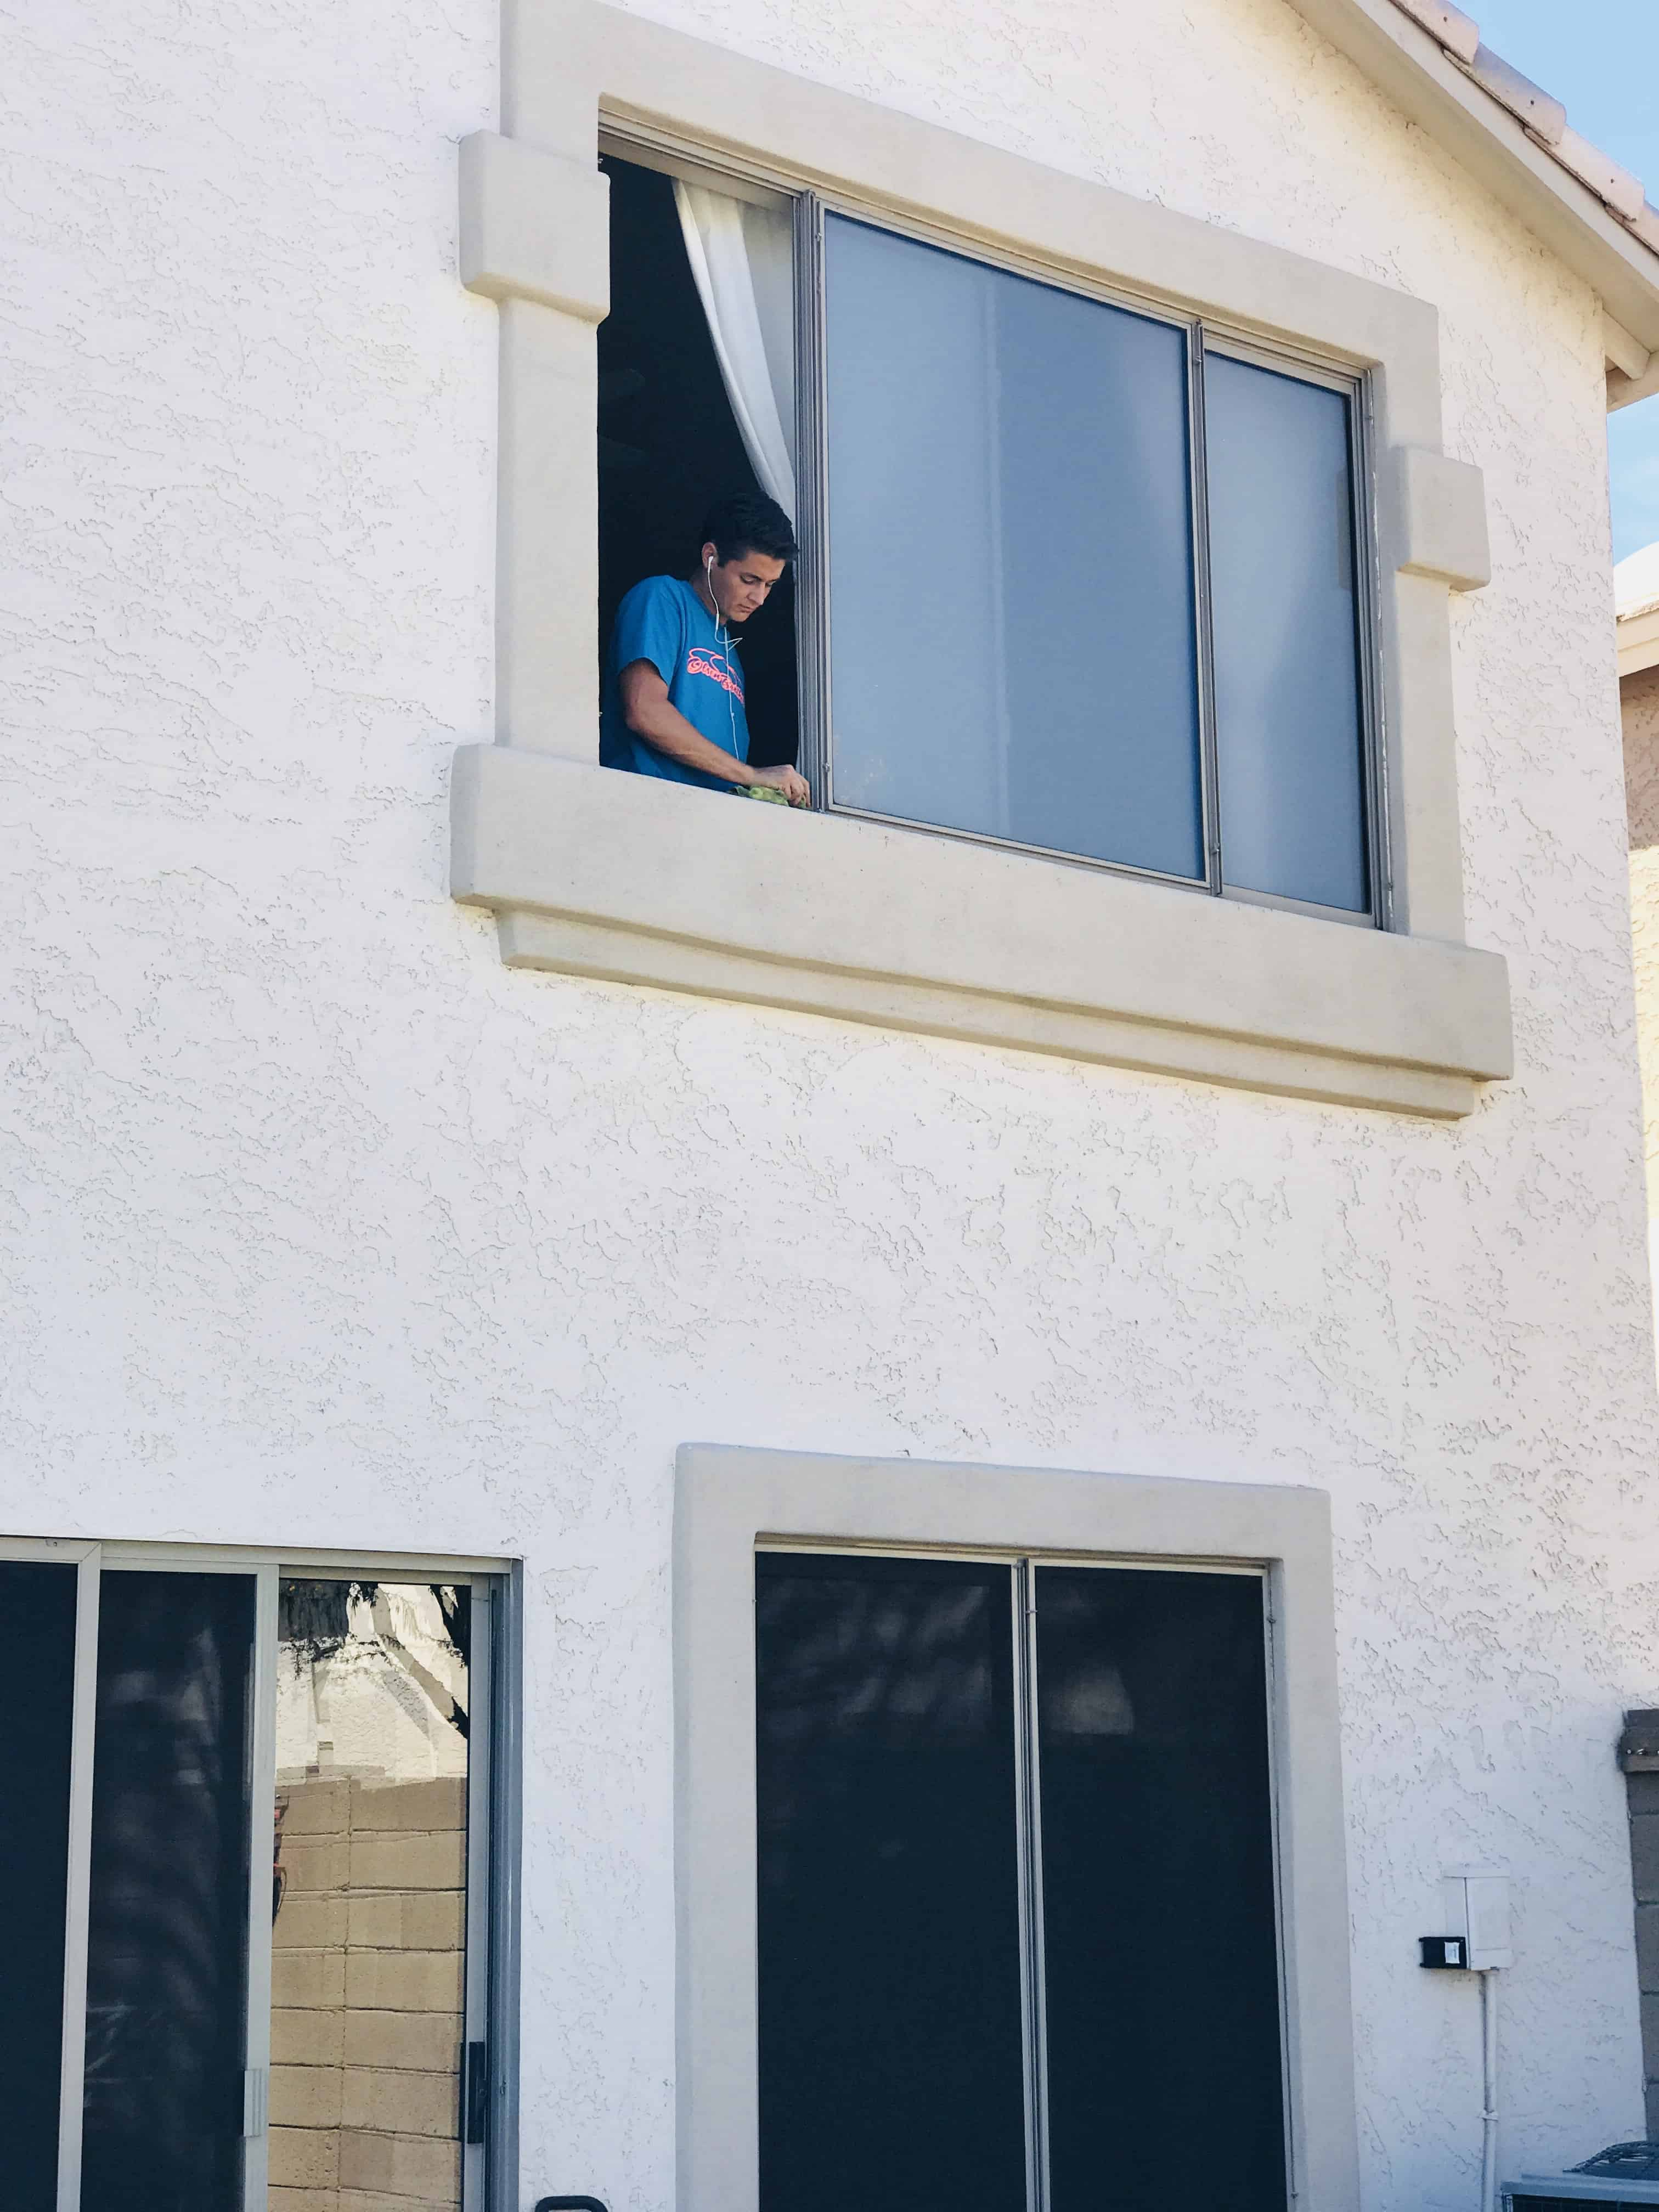 2nd story window cleaning in Chandler, Az